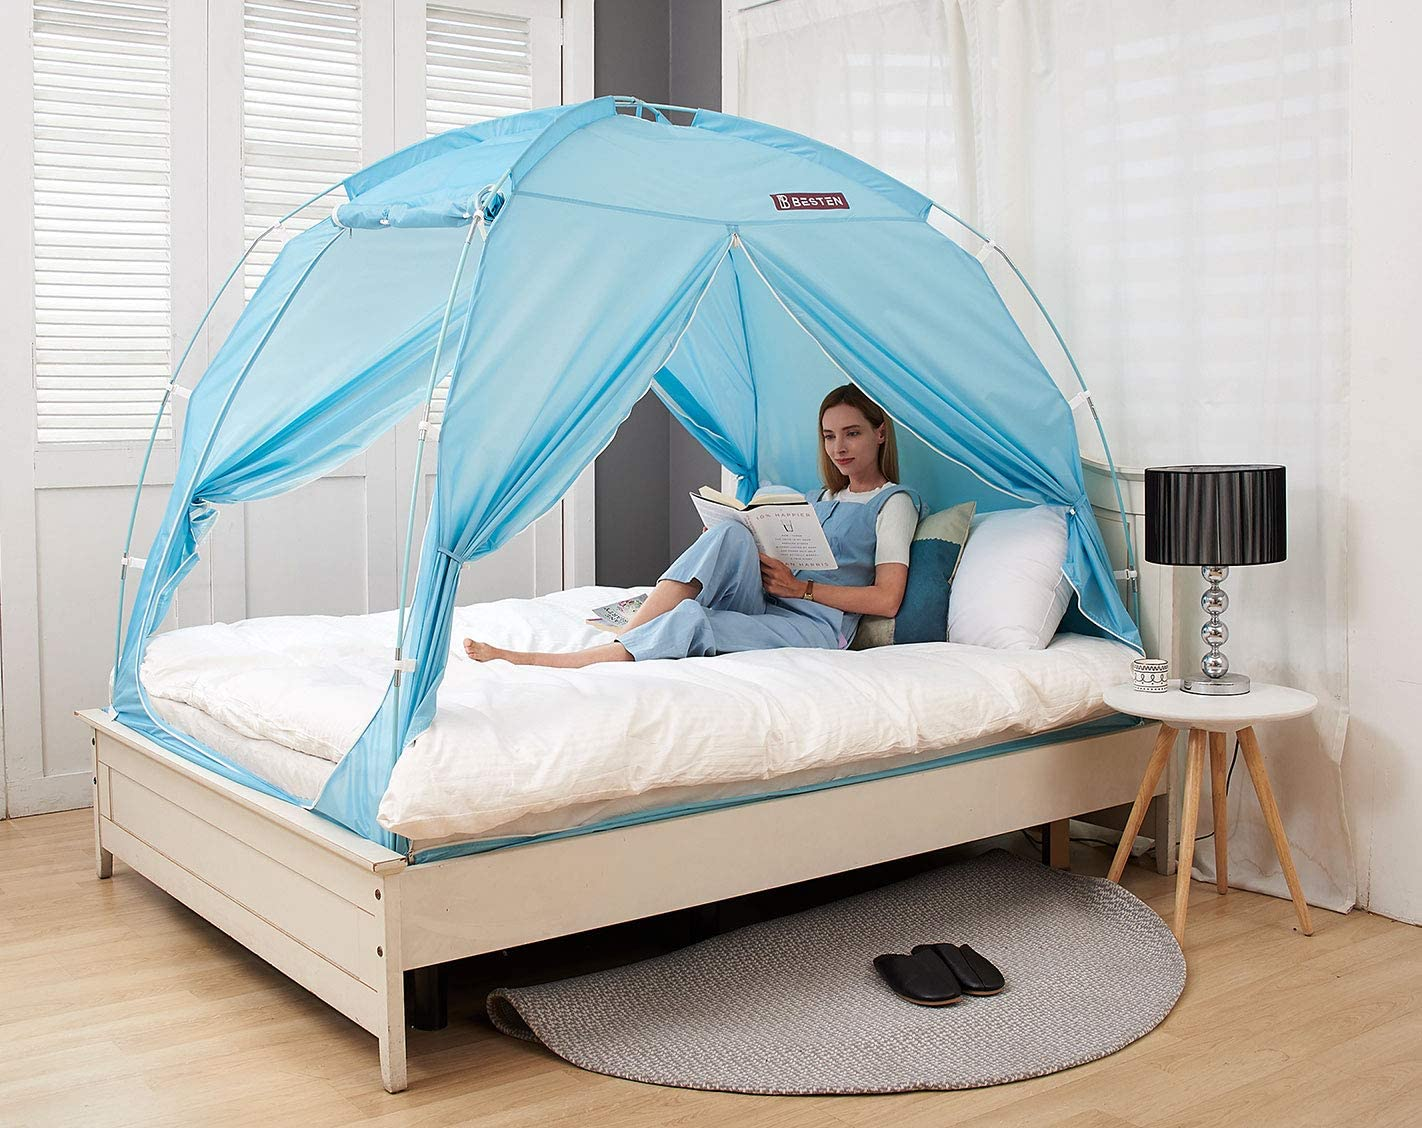 BESTEN Floorless Indoor Privacy Tent on Bed with Color Poles for Cozy Sleep in Drafty Rooms (Twin, Mint)